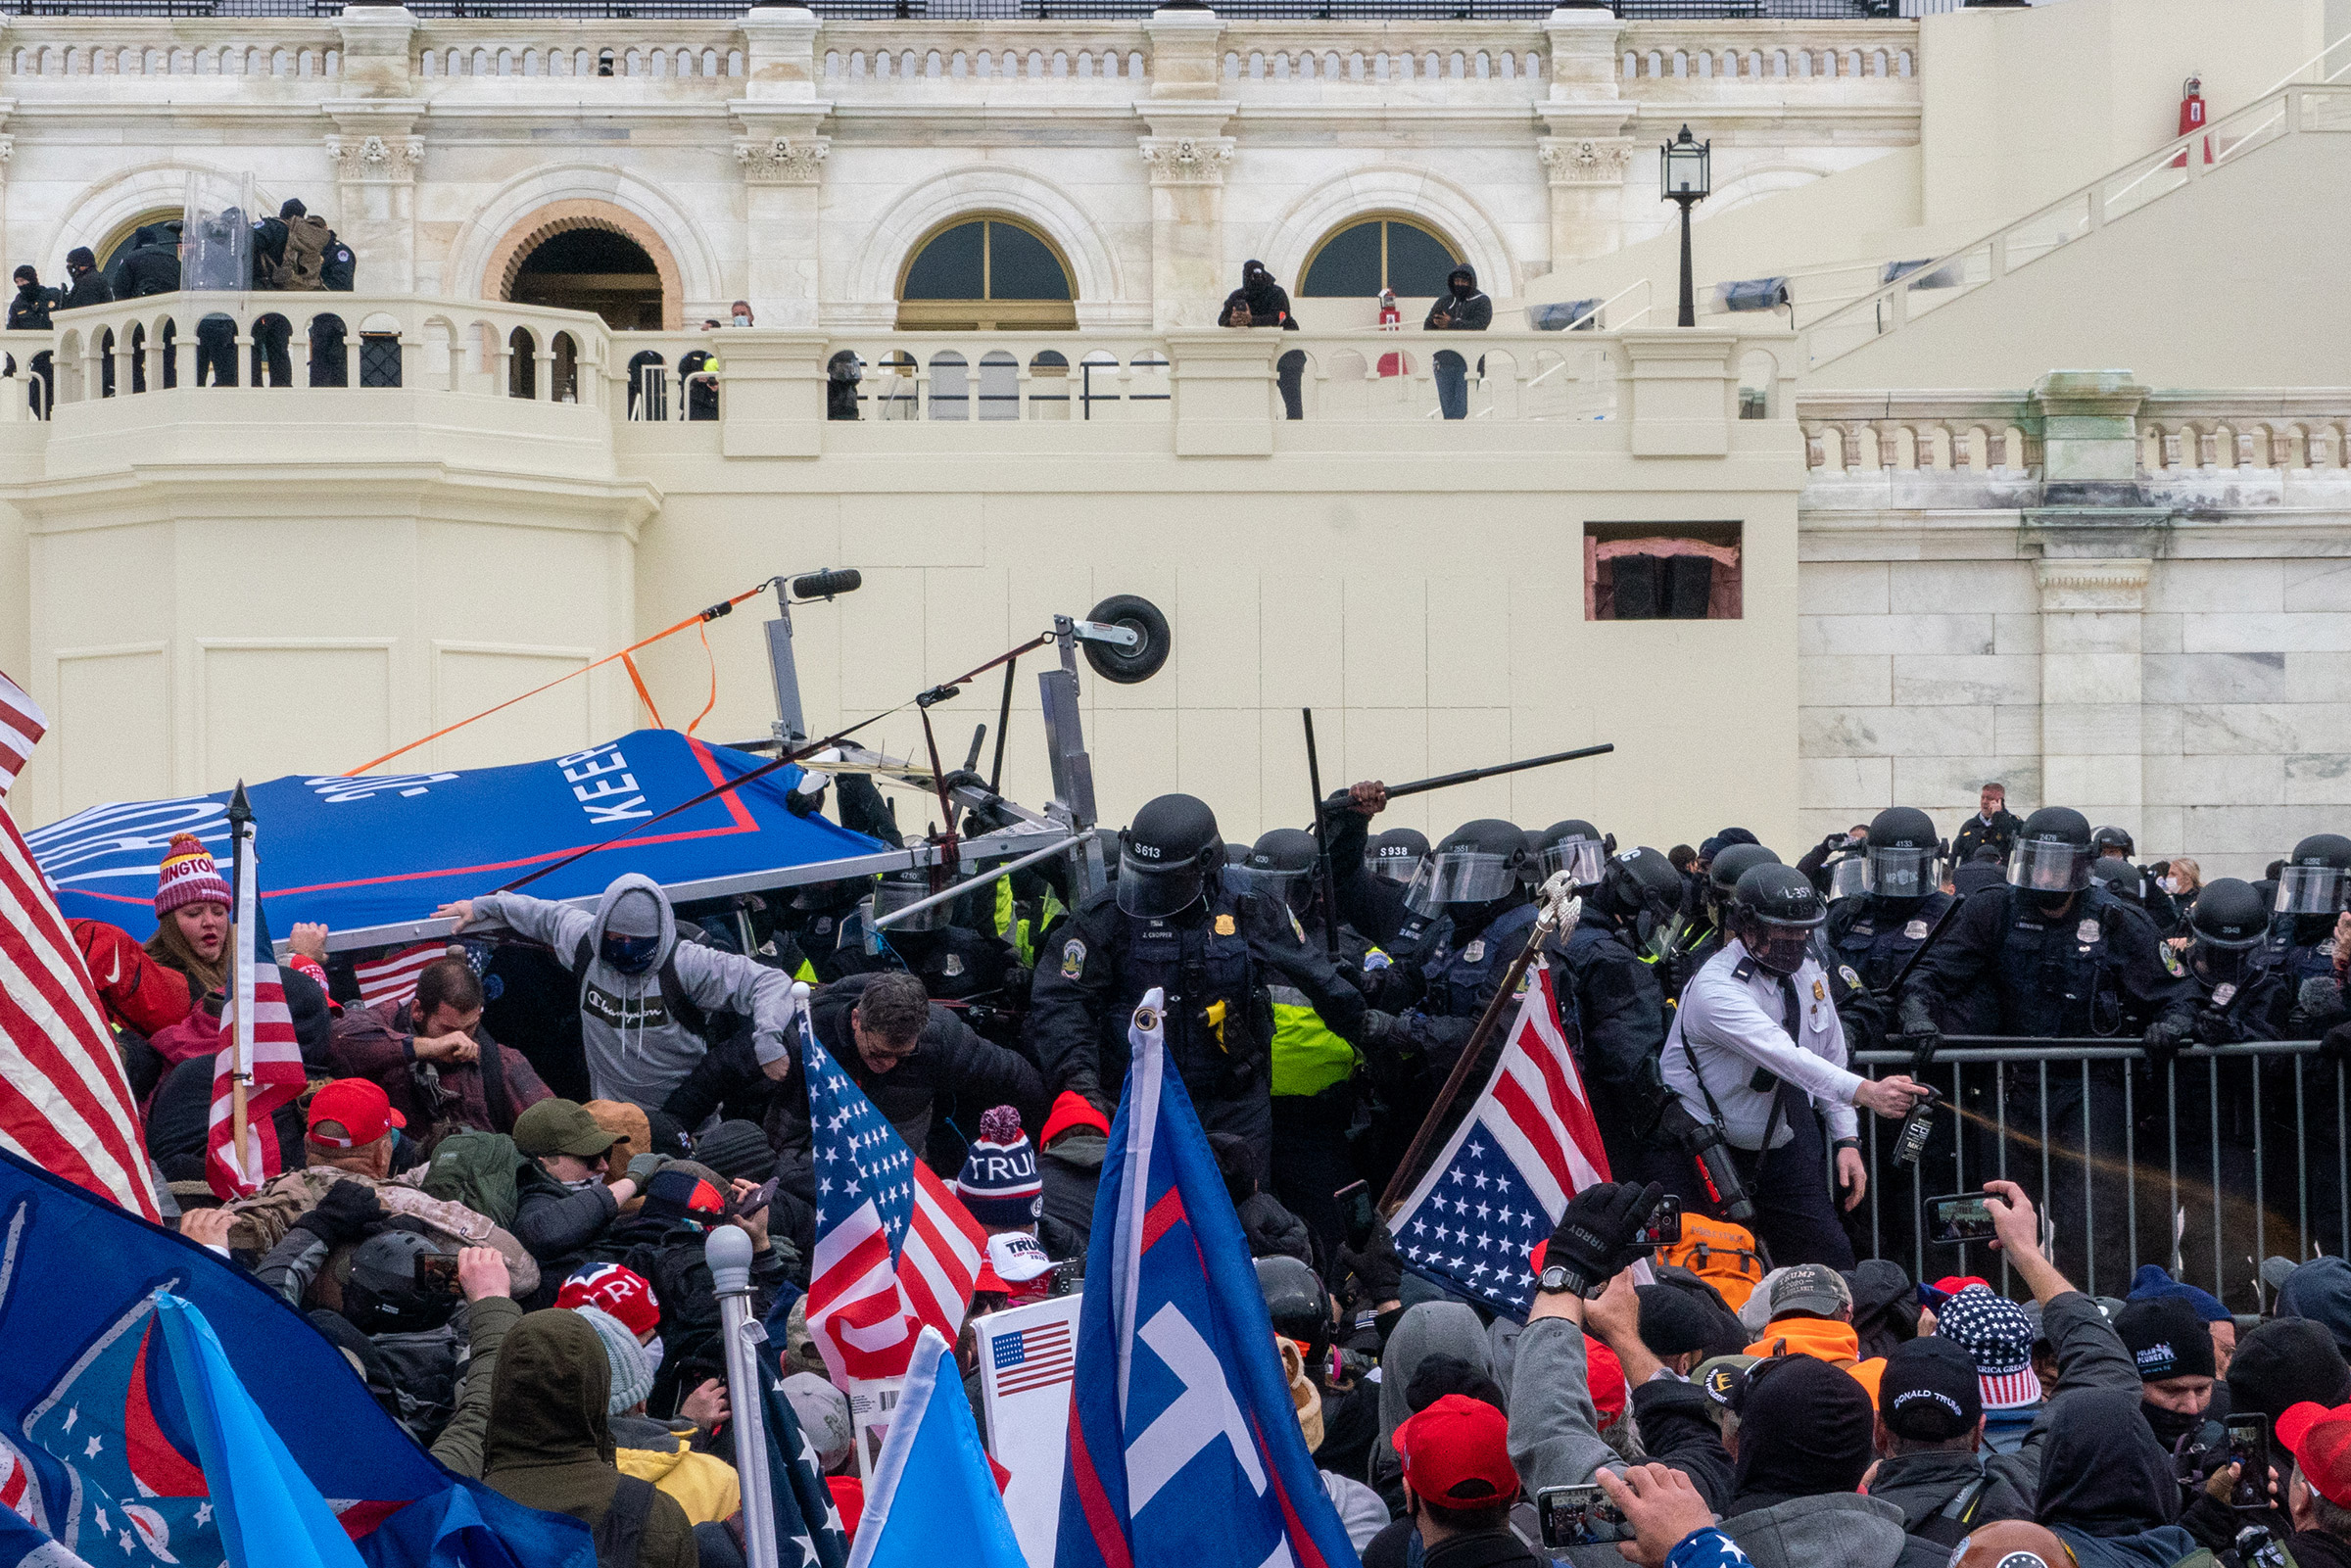 Pro-Trump rioters clash with police before gaining entry to the U.S. Capitol following an inflammatory speech by President Trump on Jan. 6.